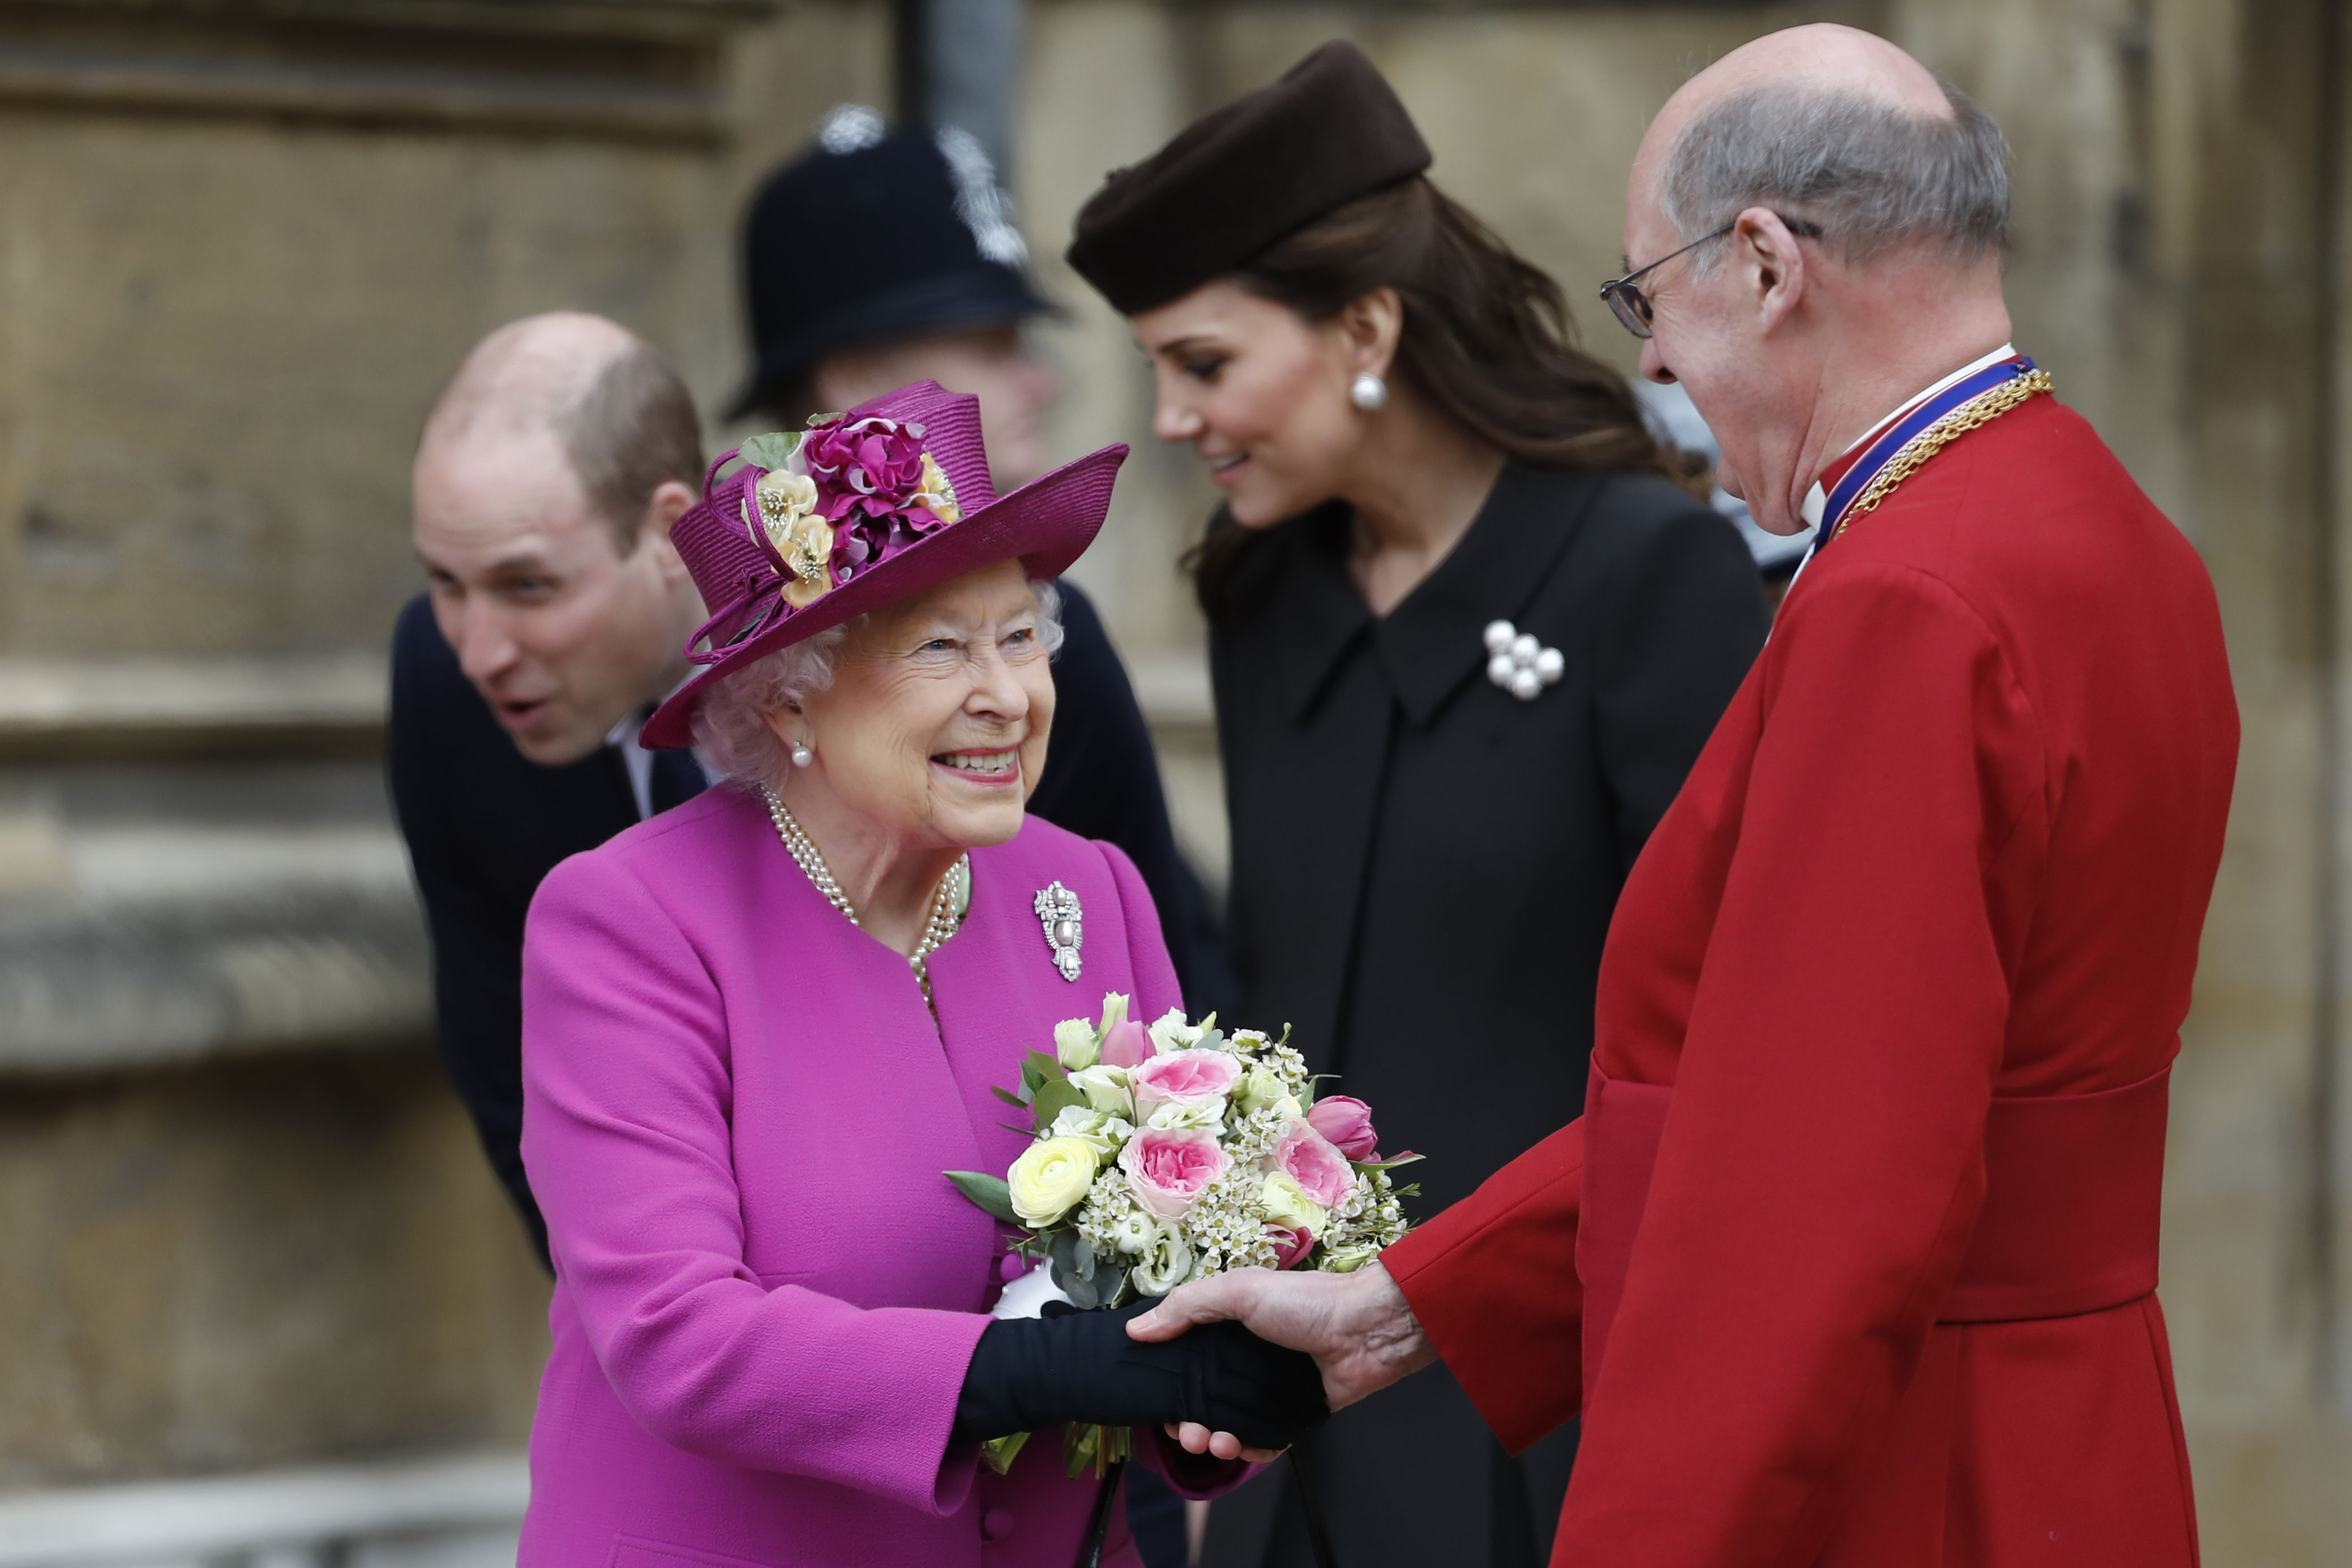 Queen Elizabeth II smiles as she shakes hands with Dean of Windsor, David Conner after attending the Easter Mattins Service at St. George's Chapel, Windsor Castle on April 1, 2018.